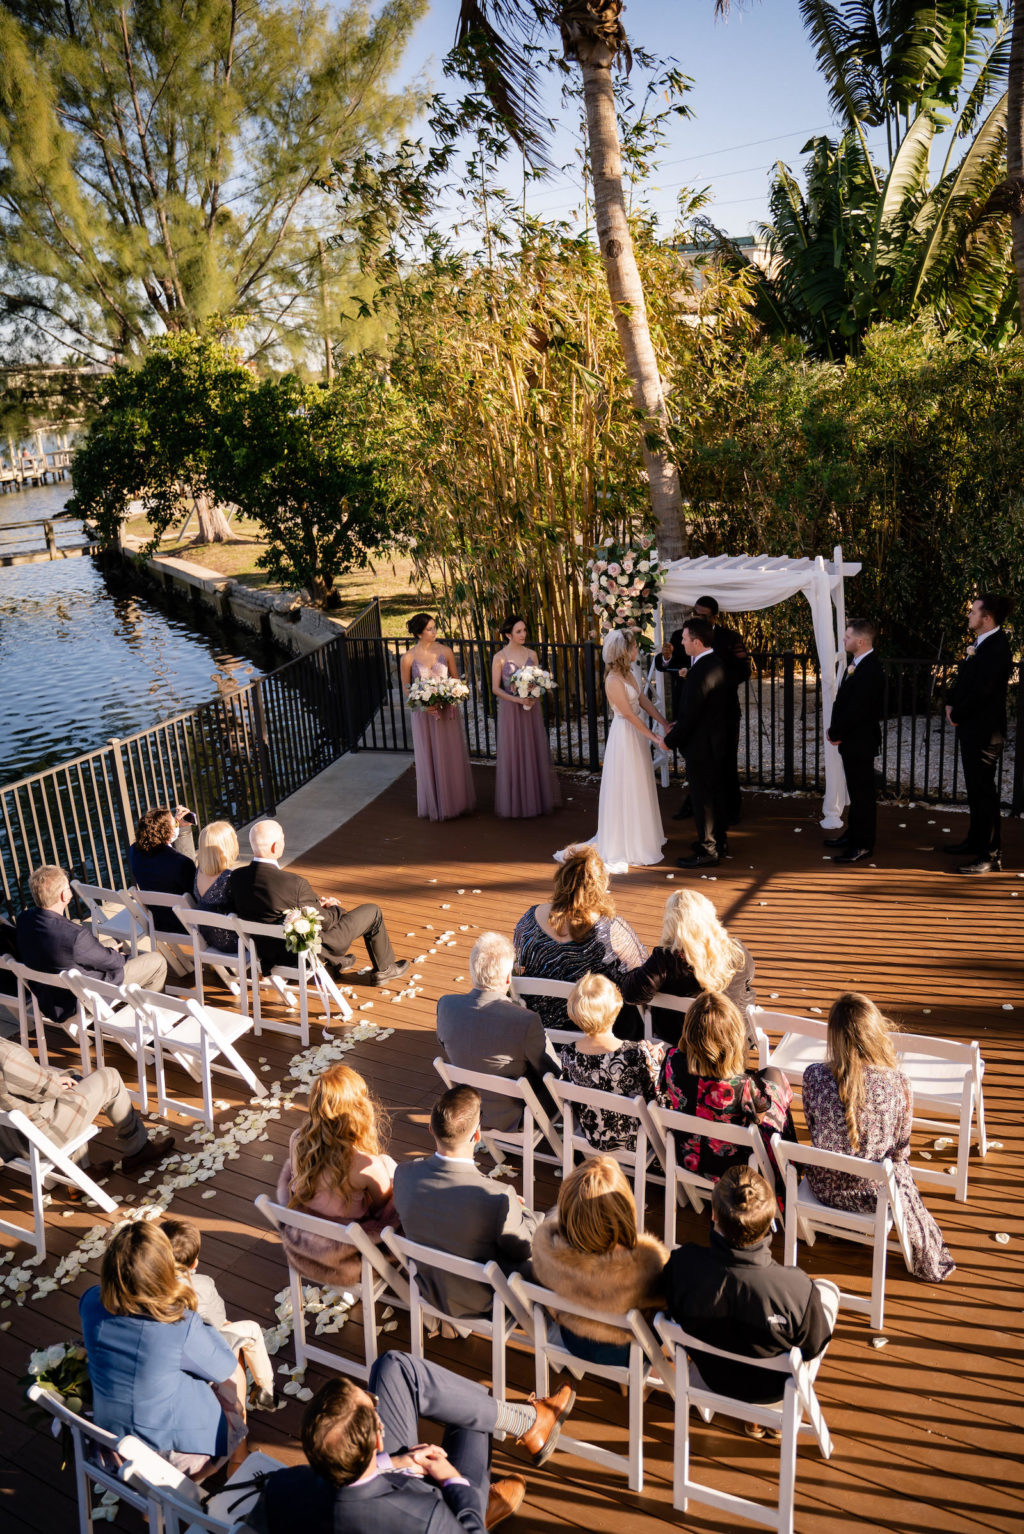 Florida Bride and Groom Exchanging Wedding Vows During Outdoor Courtyard Ceremony | St. Pete Wedding Venue Hotel Zamora